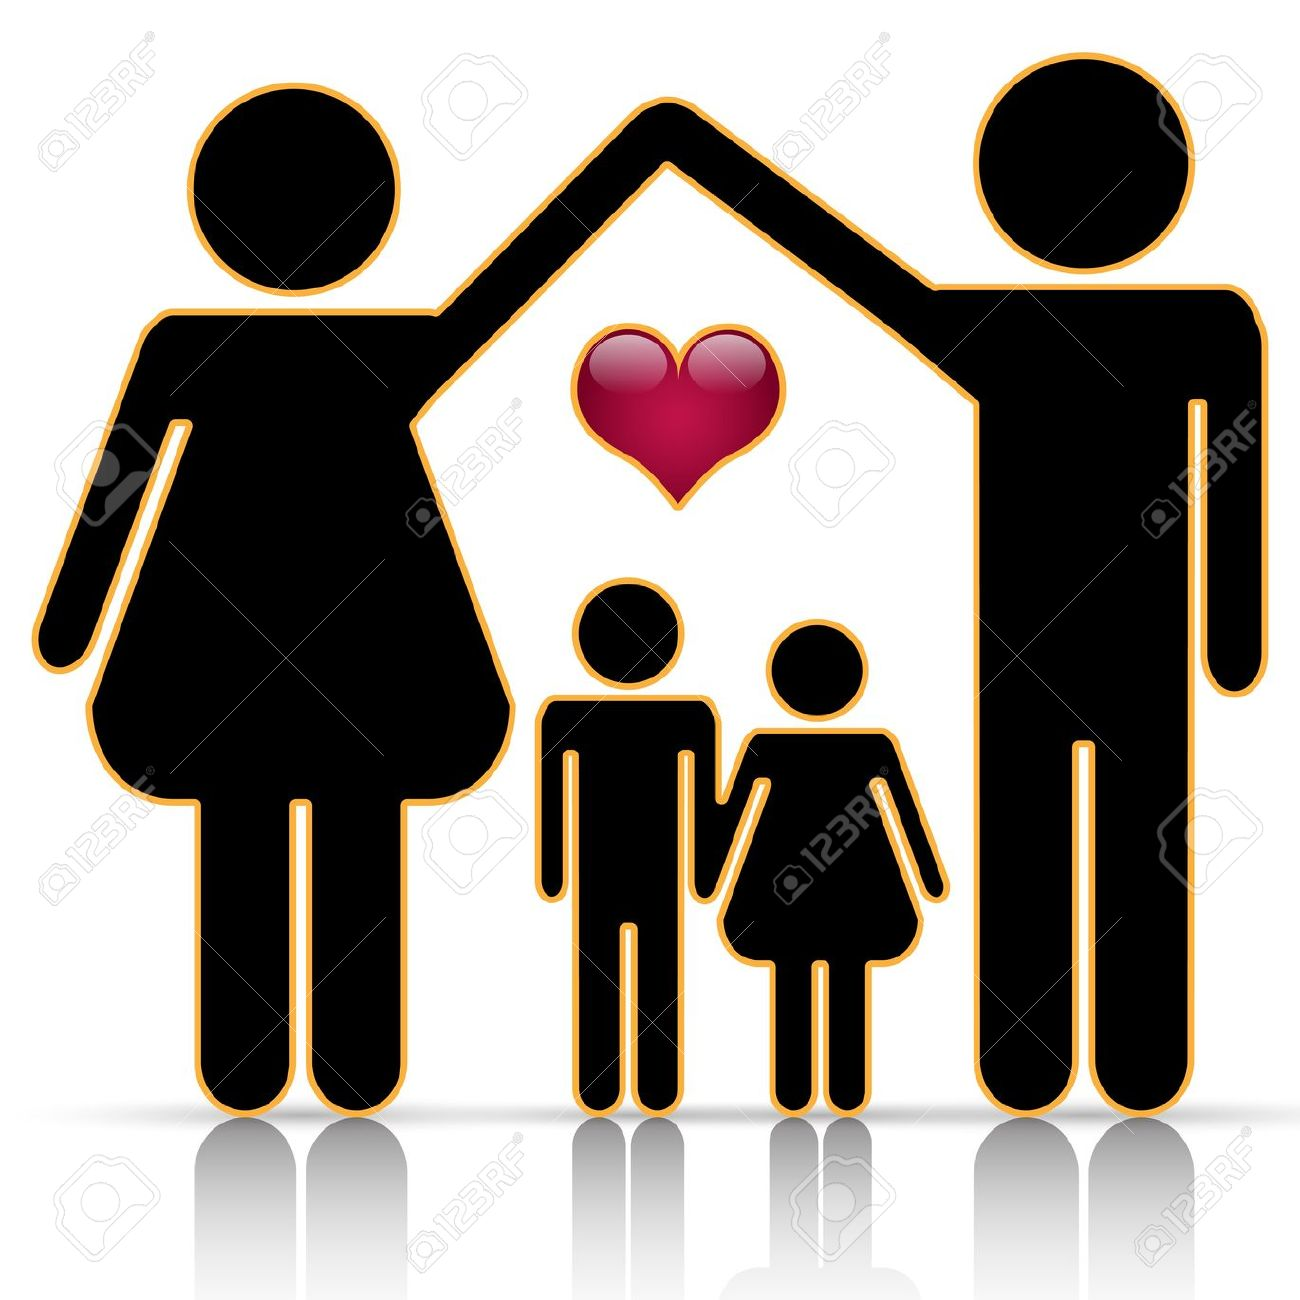 hight resolution of 1300x1300 best black family clipart